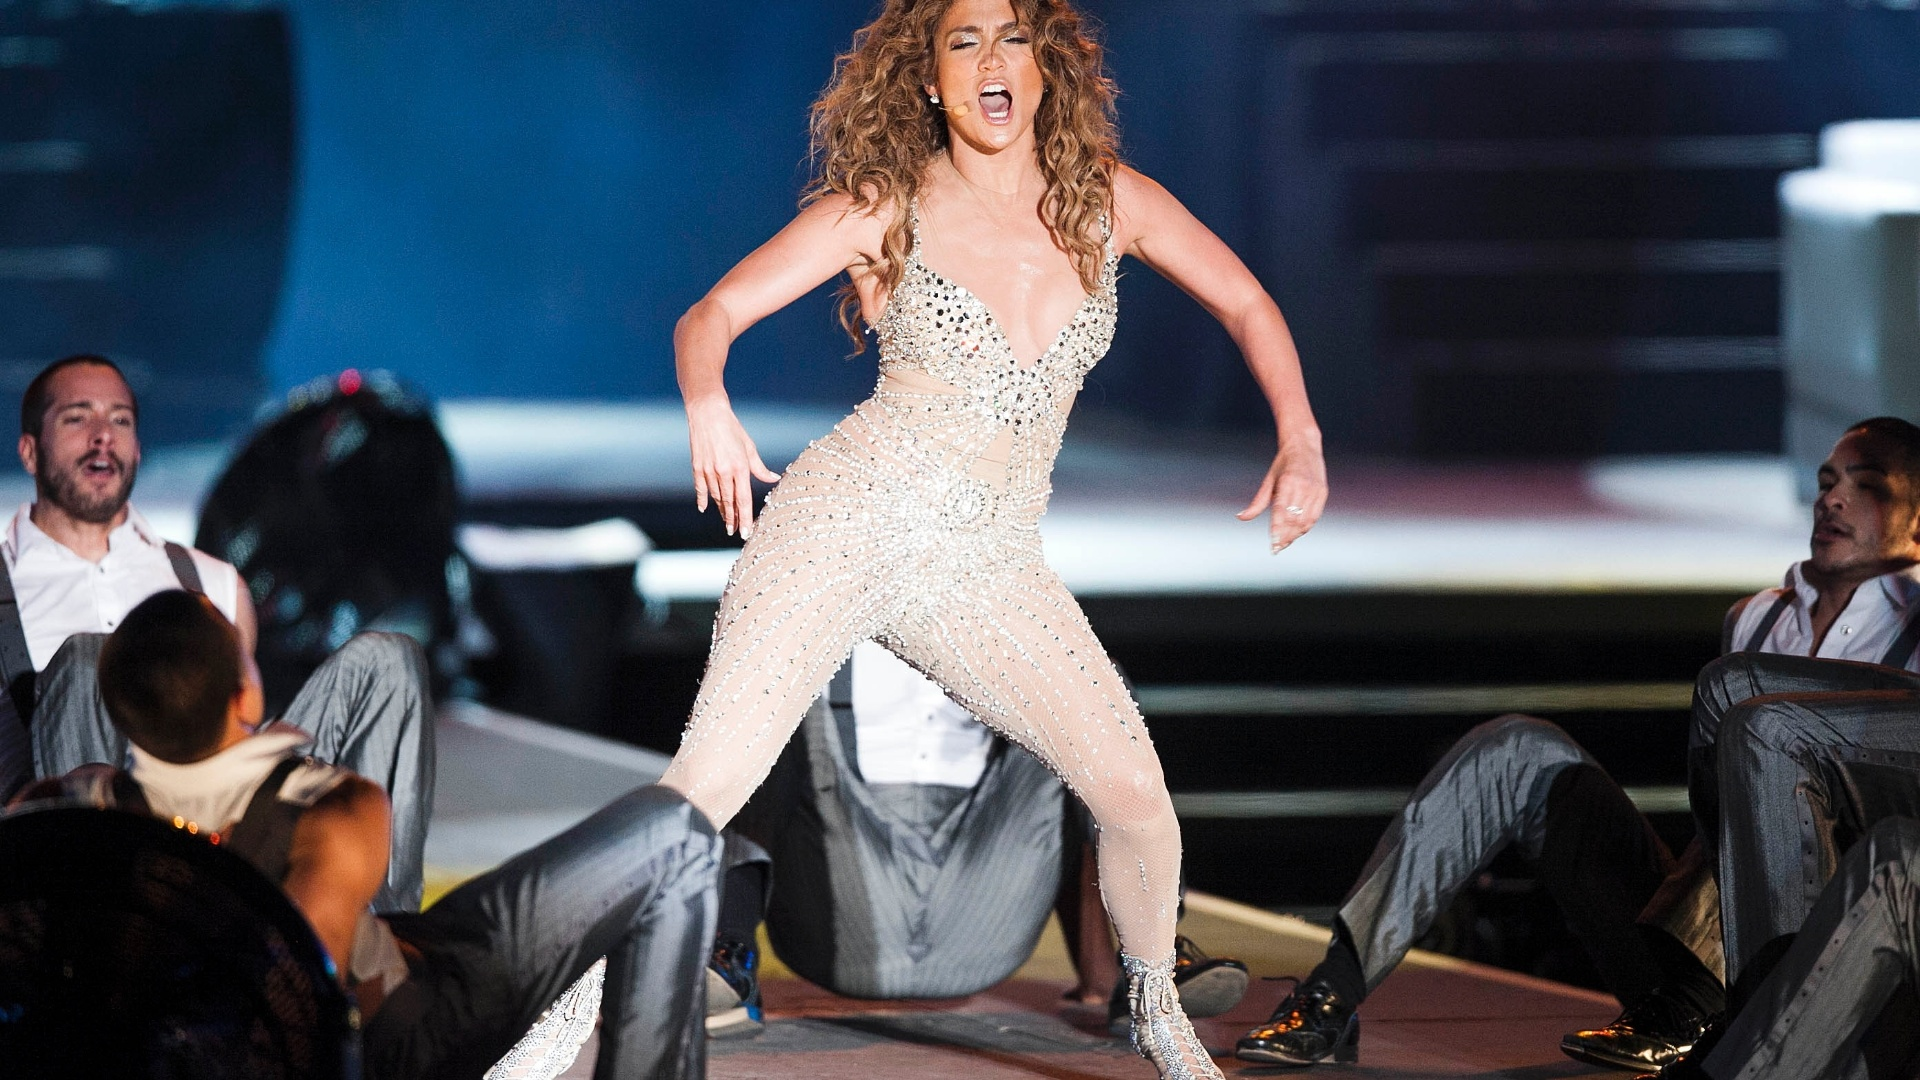 Jennifer Lopez dança no palco do Pop Music Festival, em SP (23/6/12)